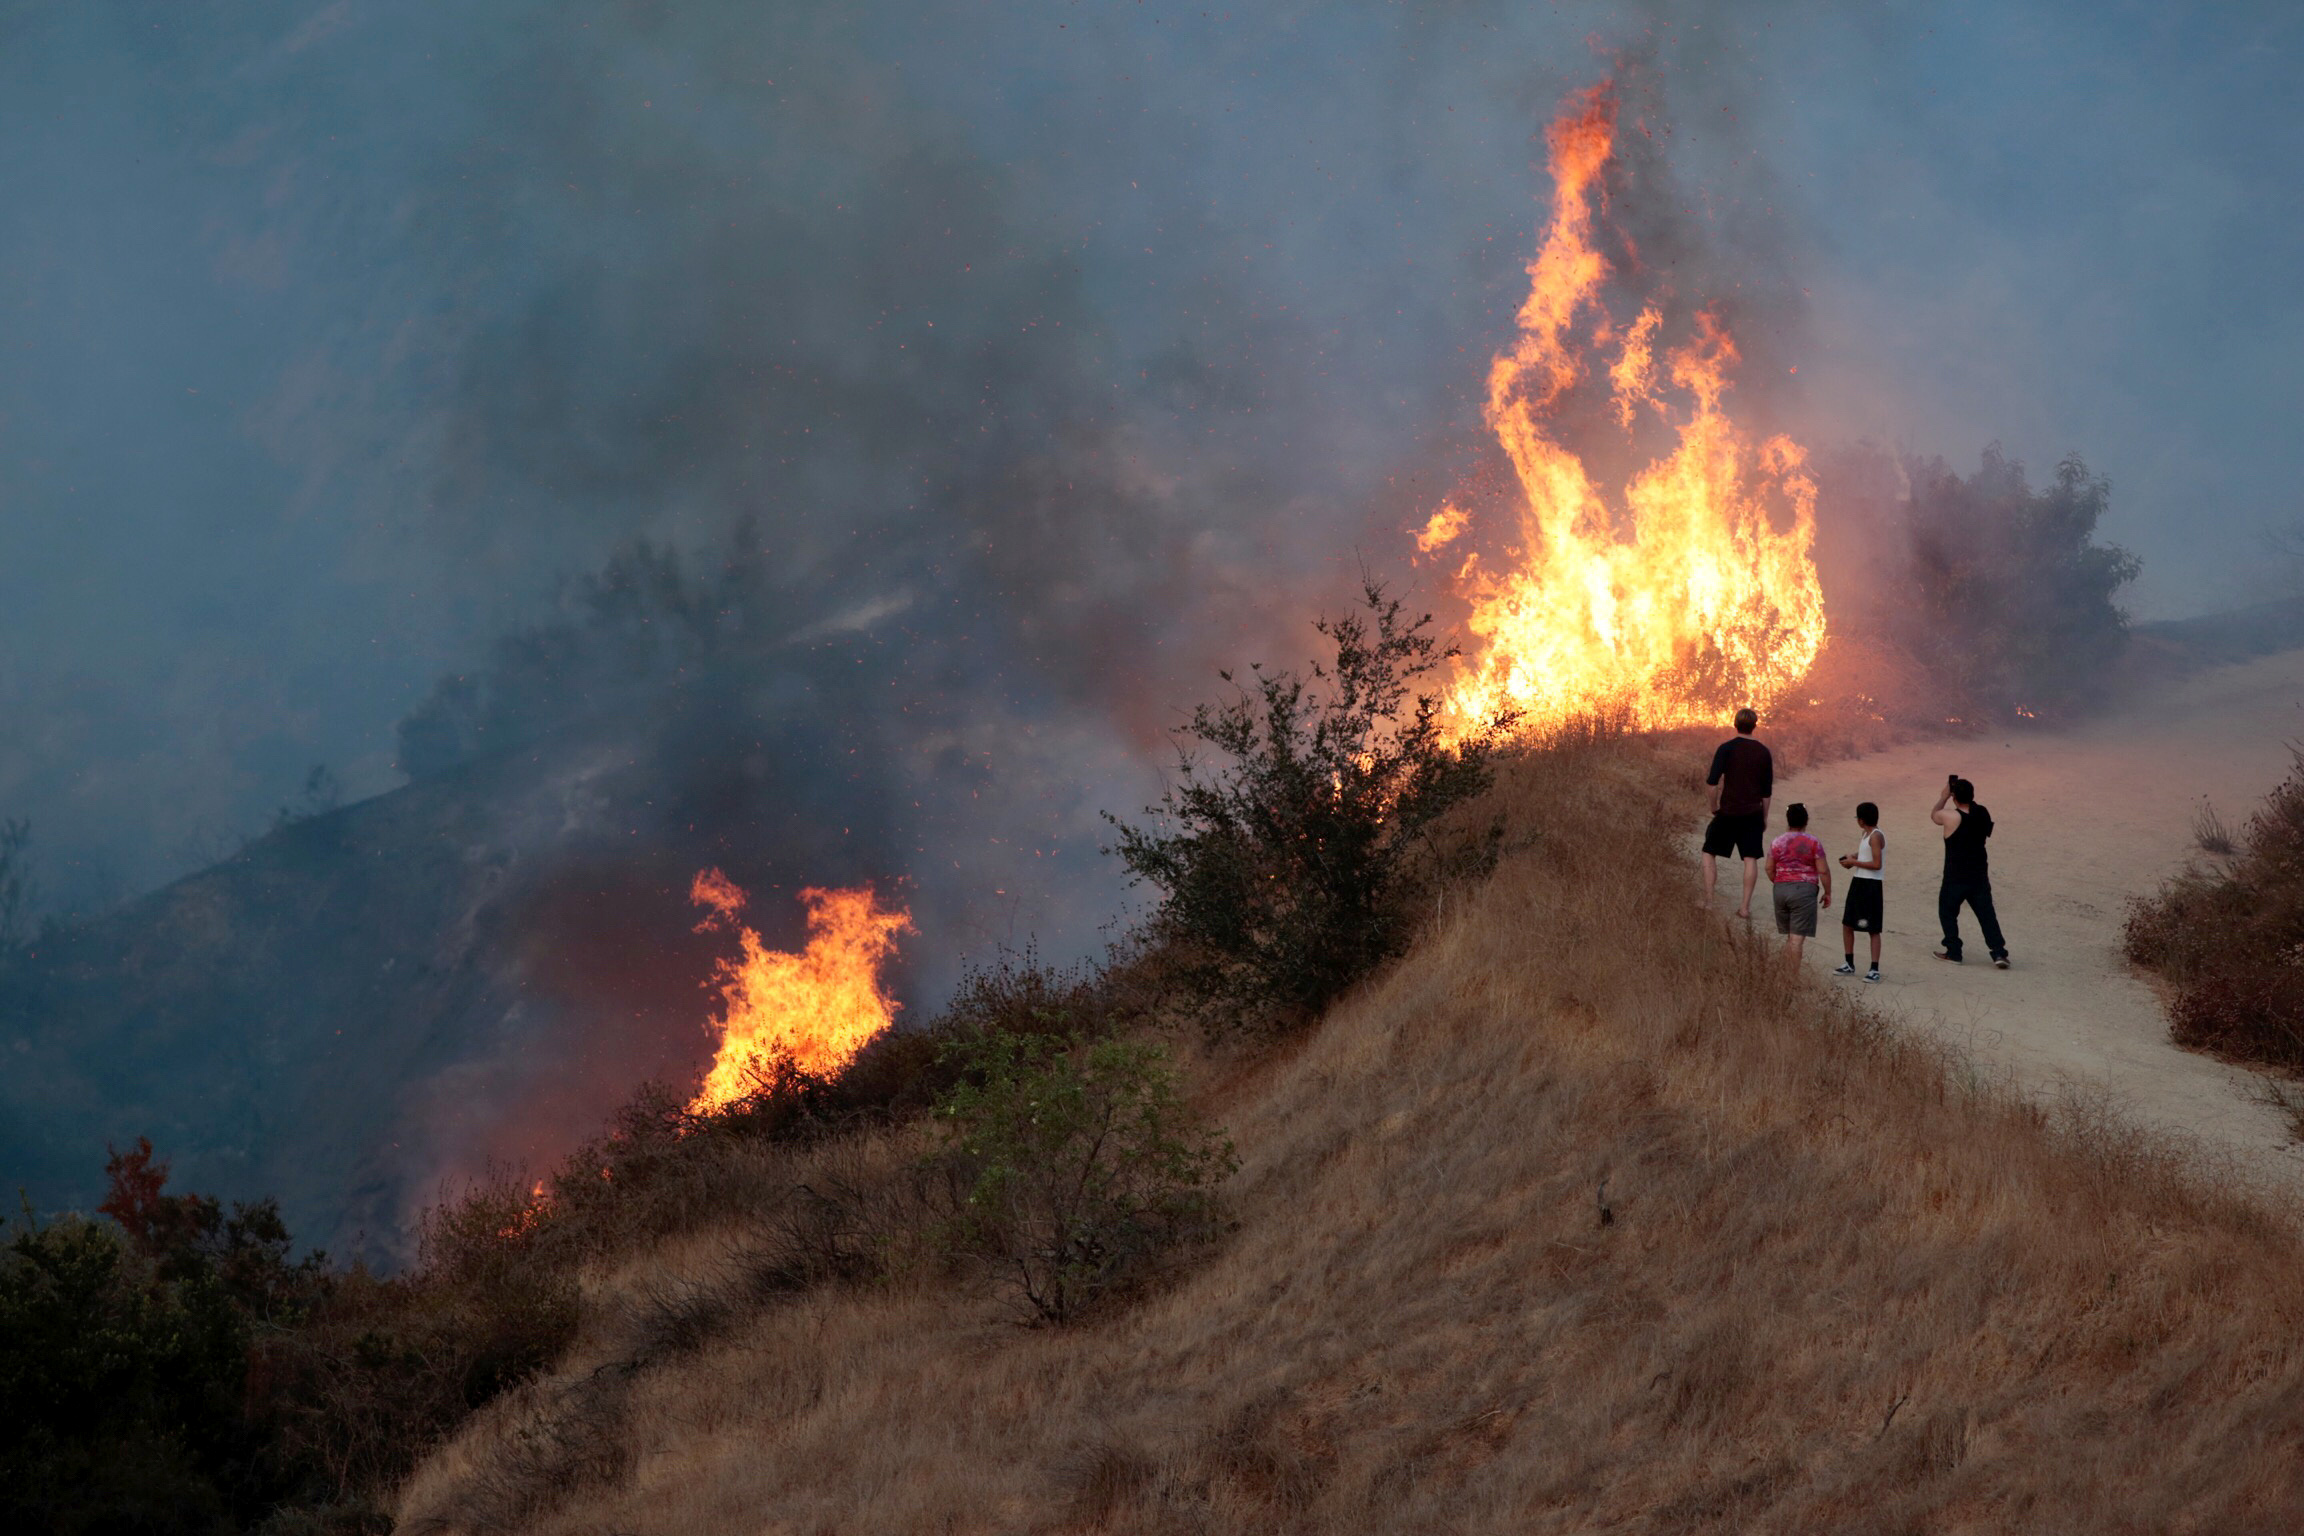 People look on at the La Tuna Canyon fire over Burbank. (REUTERS/Kyle Grillot)